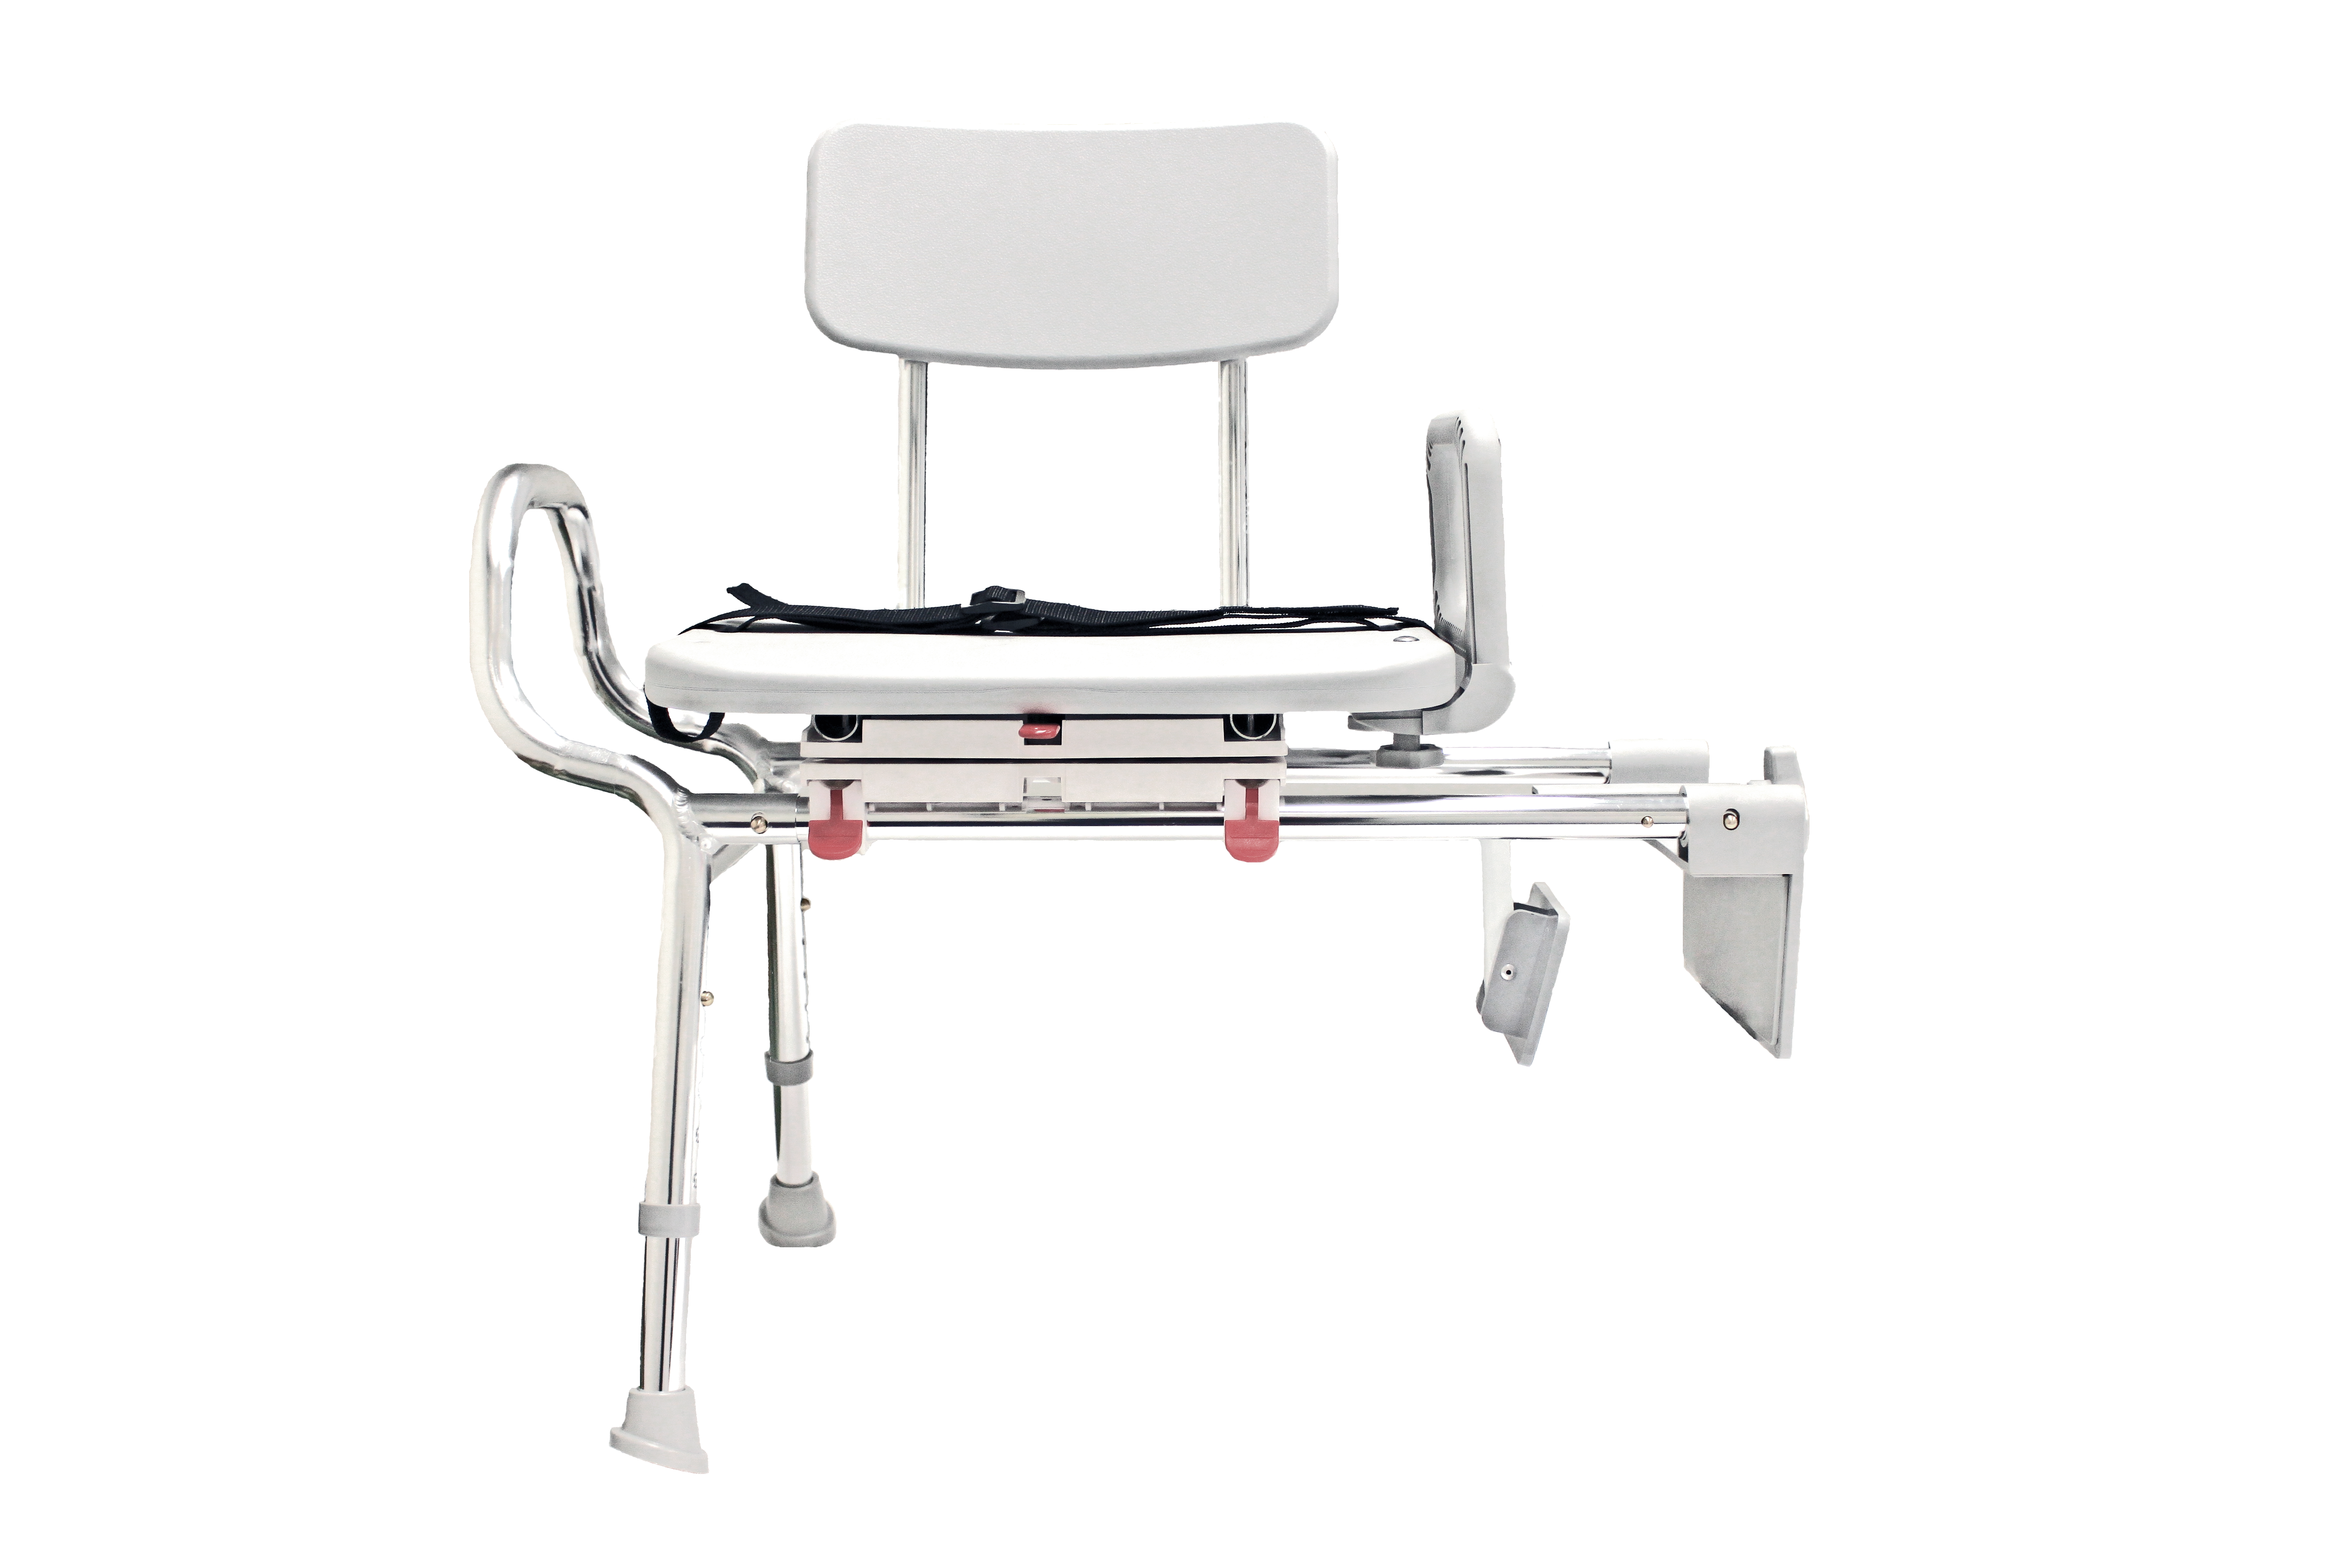 Eagle Snap N Save Sliding Tub Mount Transfer Bench with Swivel